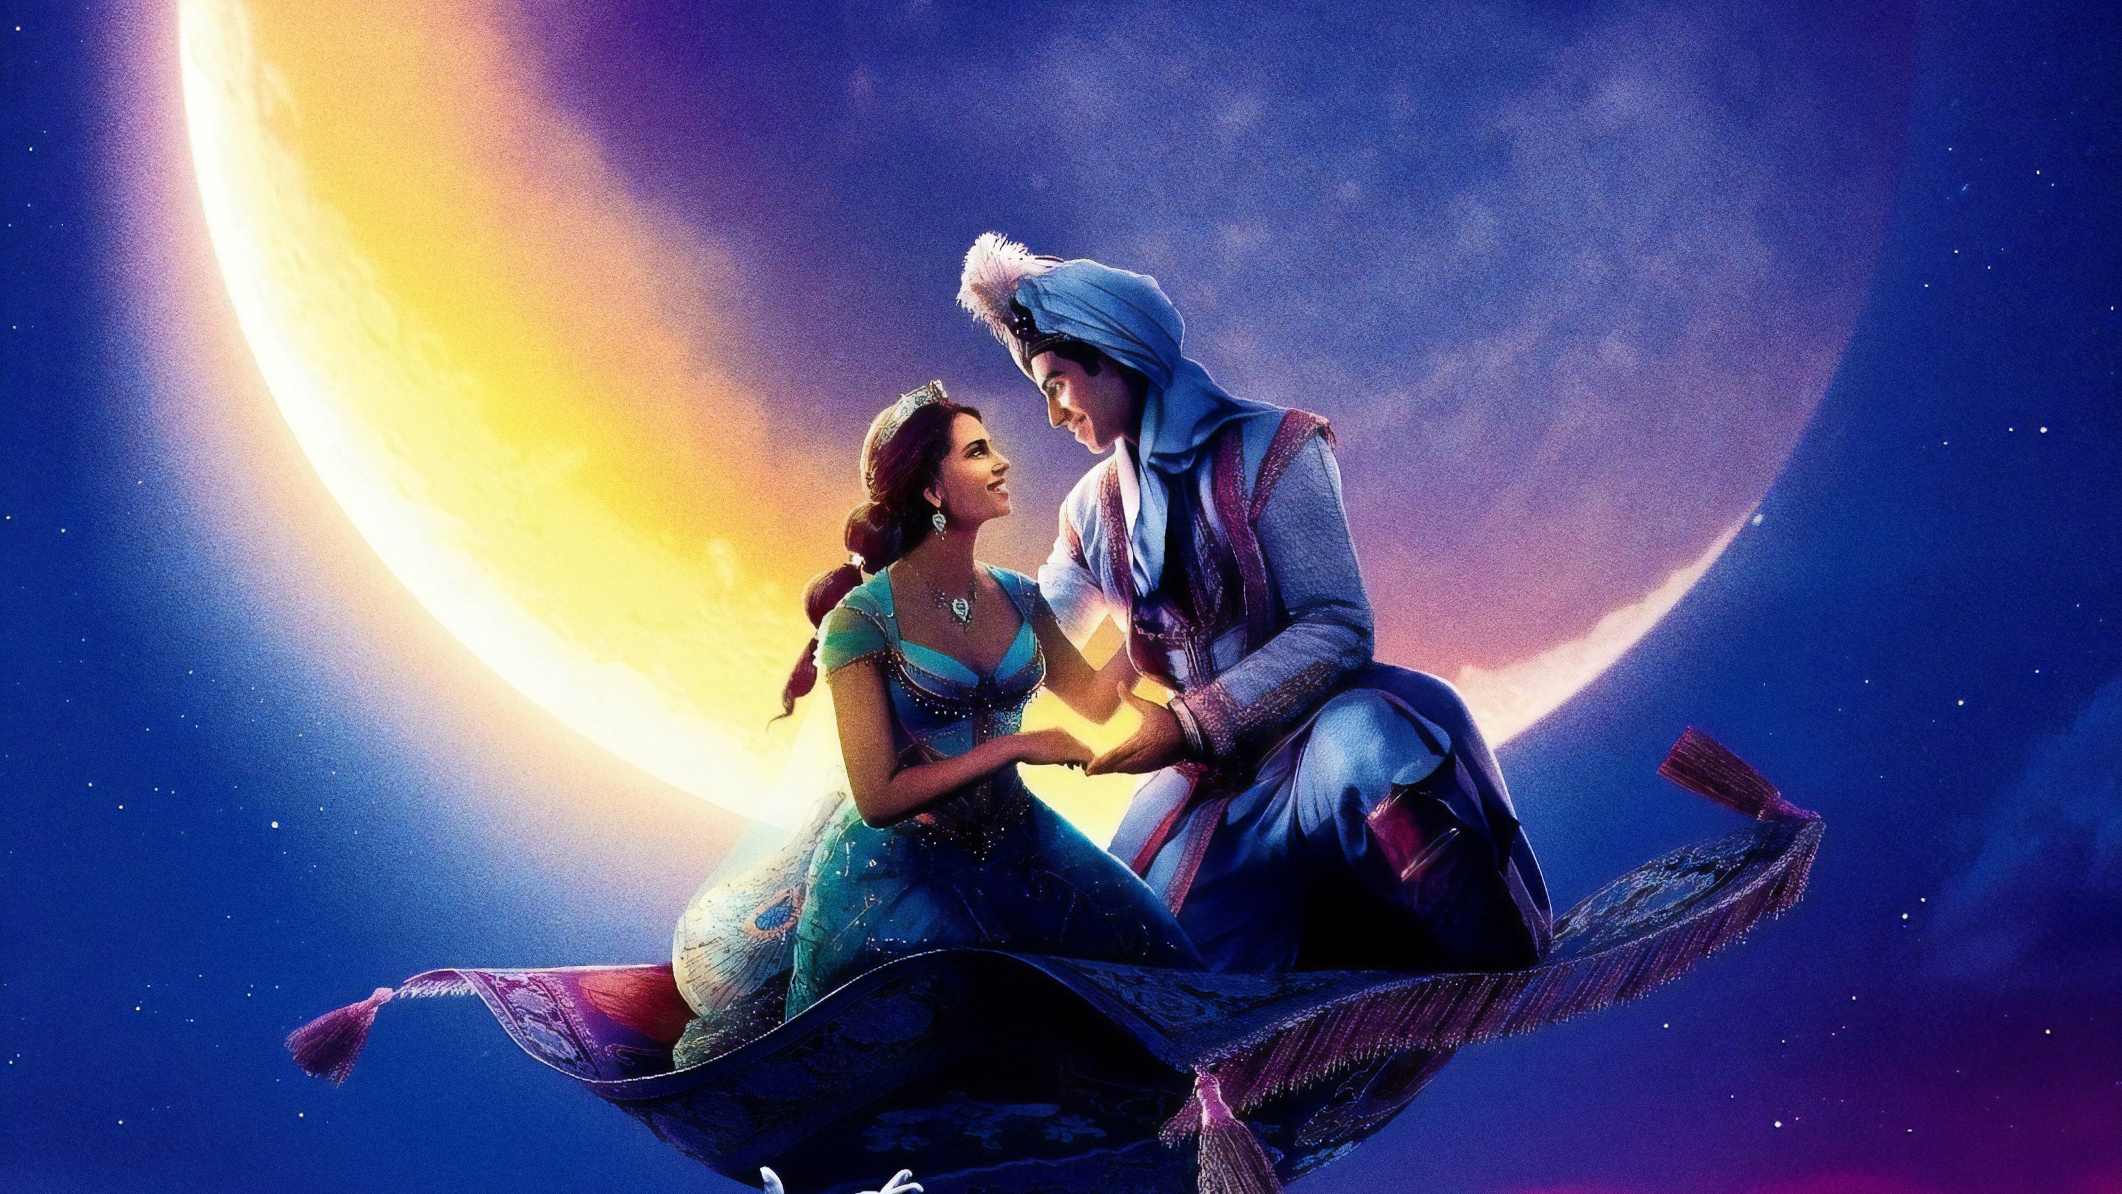 320x240 Aladdin 2019 Movie Poster Apple Iphone Ipod Touch